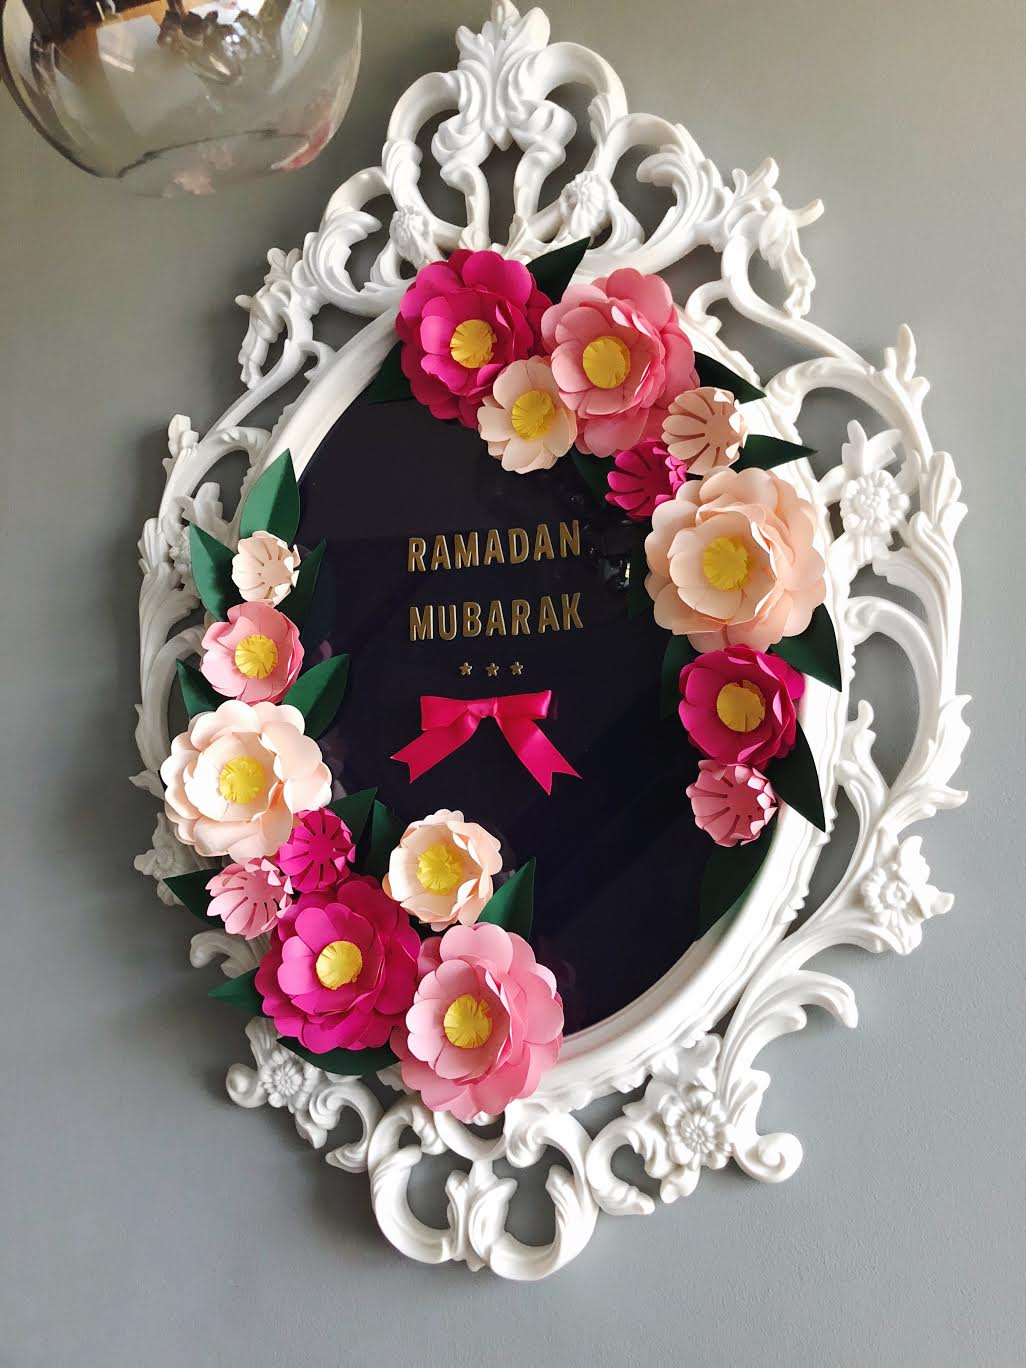 Modern-ramadan-decor-ikea-mirror-wreath